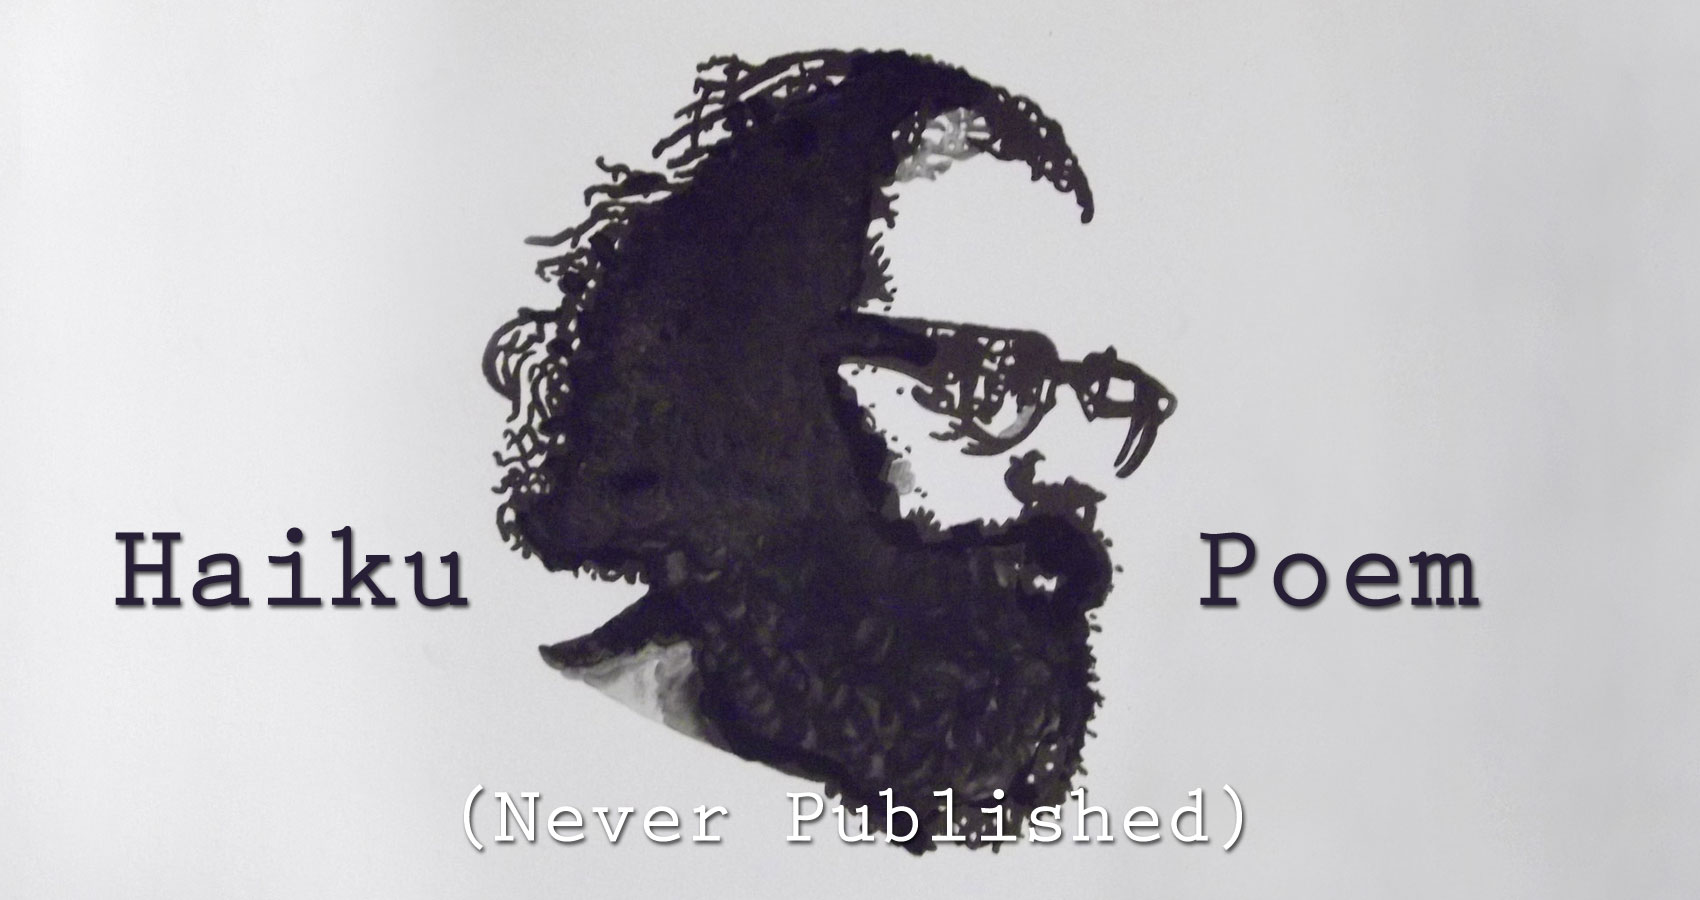 Haiku (Never Published) Poem, by Allen Ginsberg at Spillwords.com